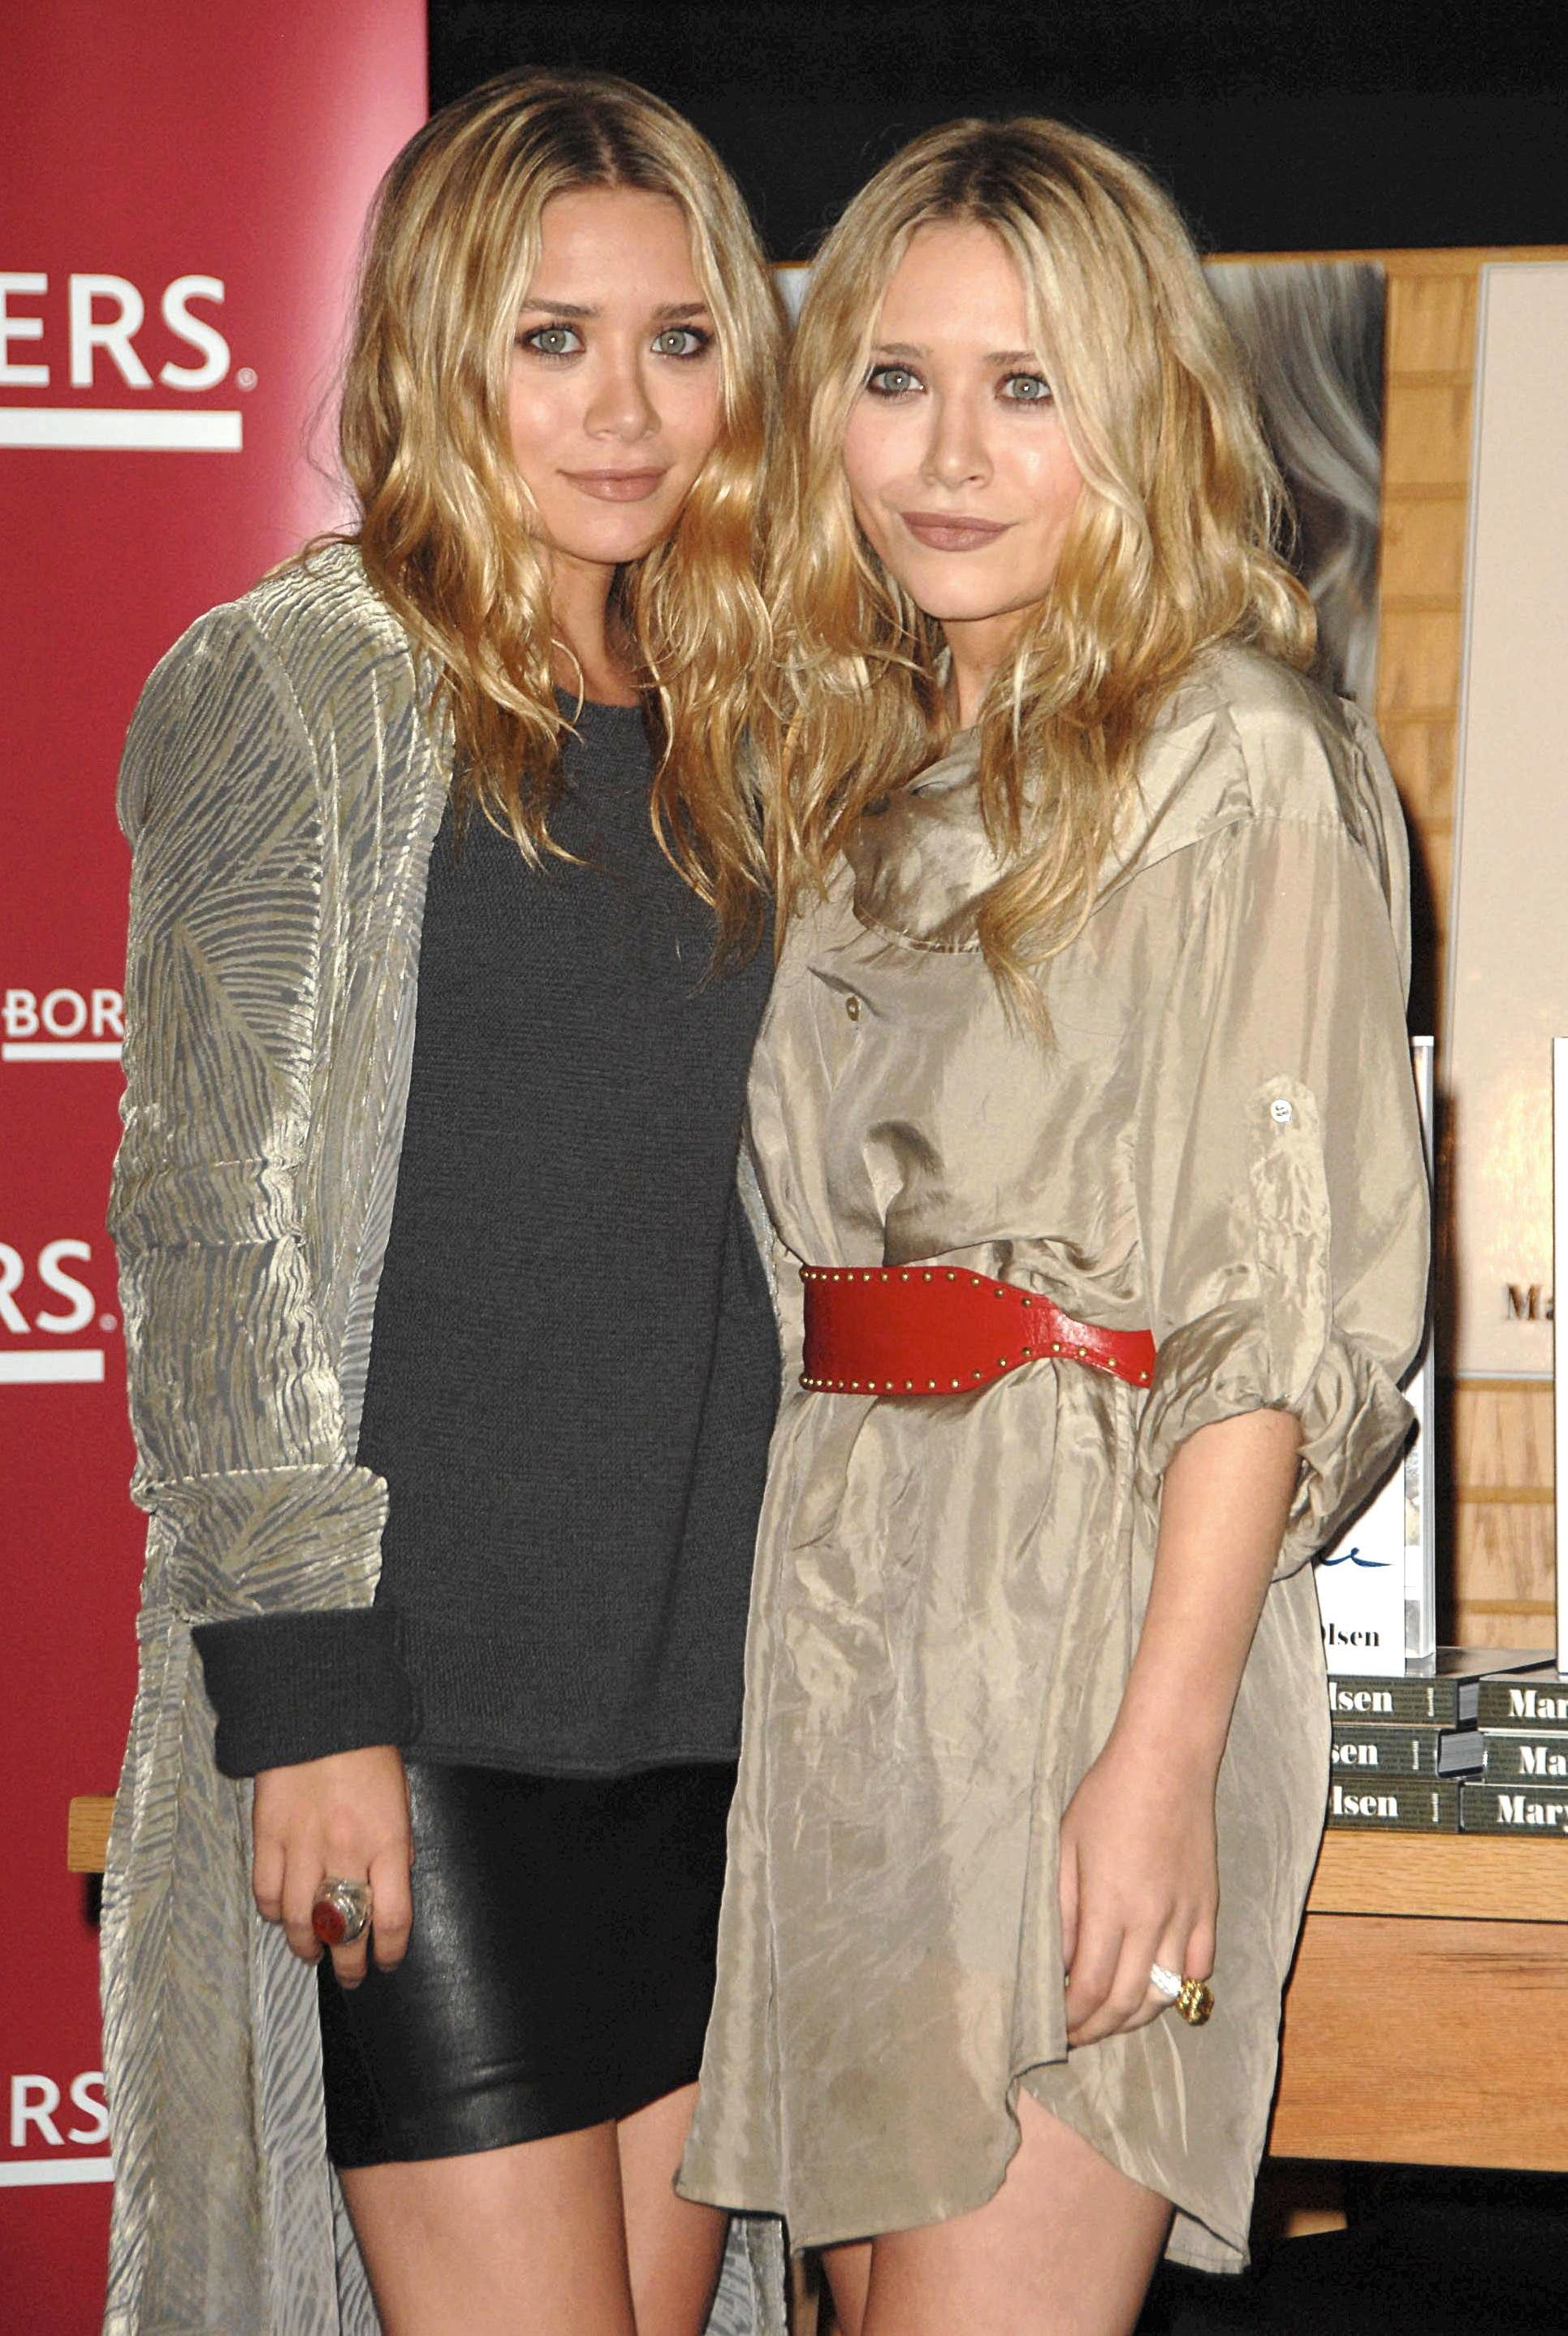 Mary-Kate and Ashley Olsen at an event